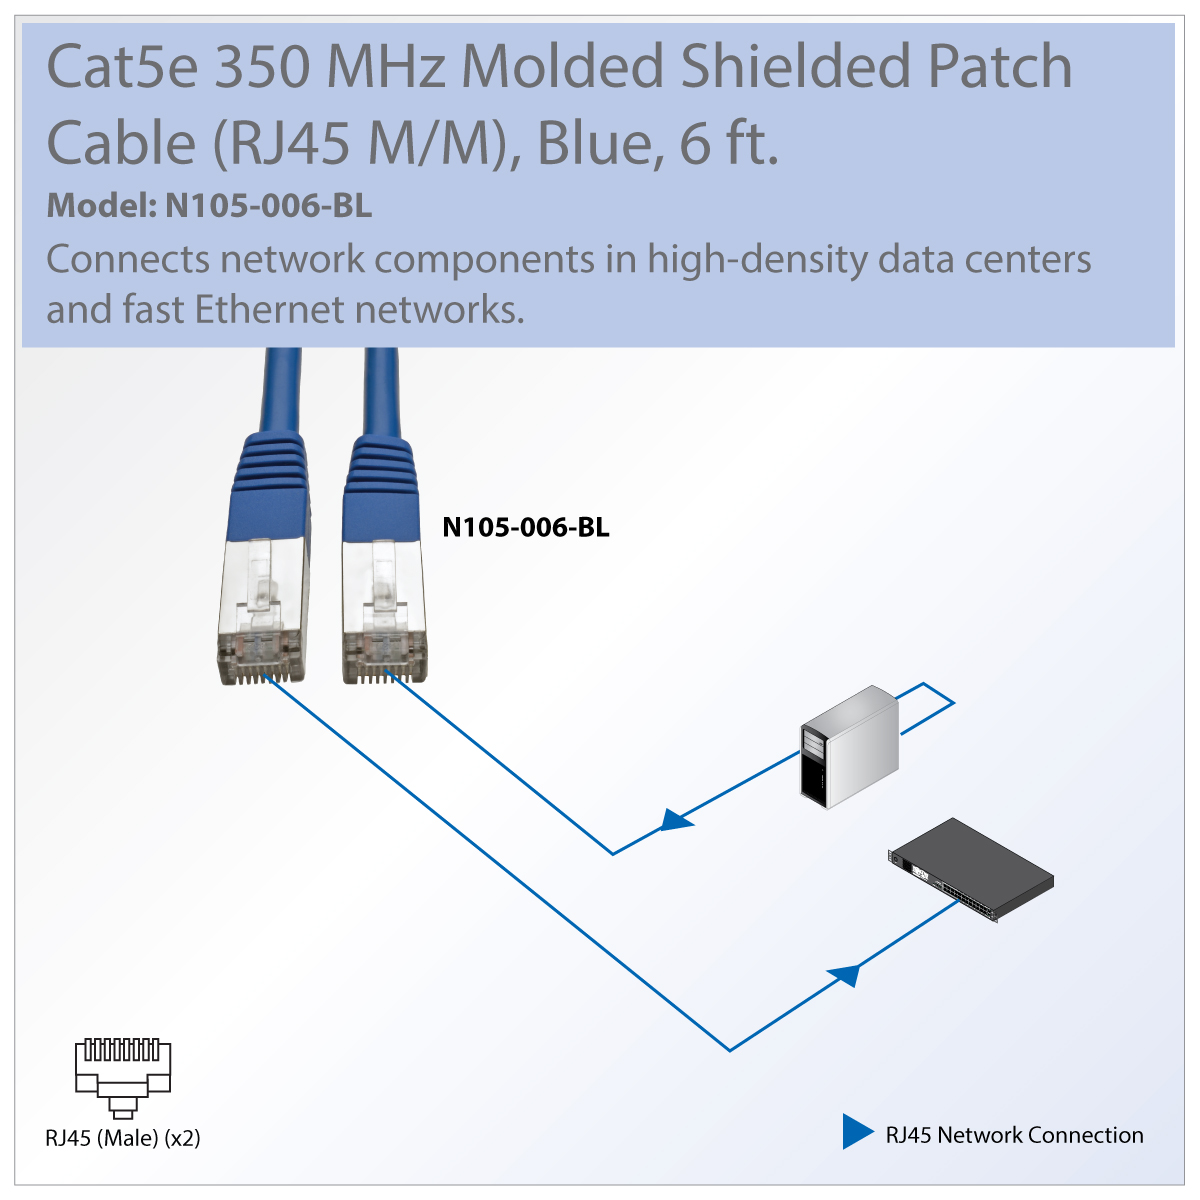 Tripp Lite Cat5e Molded Shielded Patch Cable Stp Rj45 M 350 Mhz Ether On Cat 5e Wiring Diagram Connects Network Components